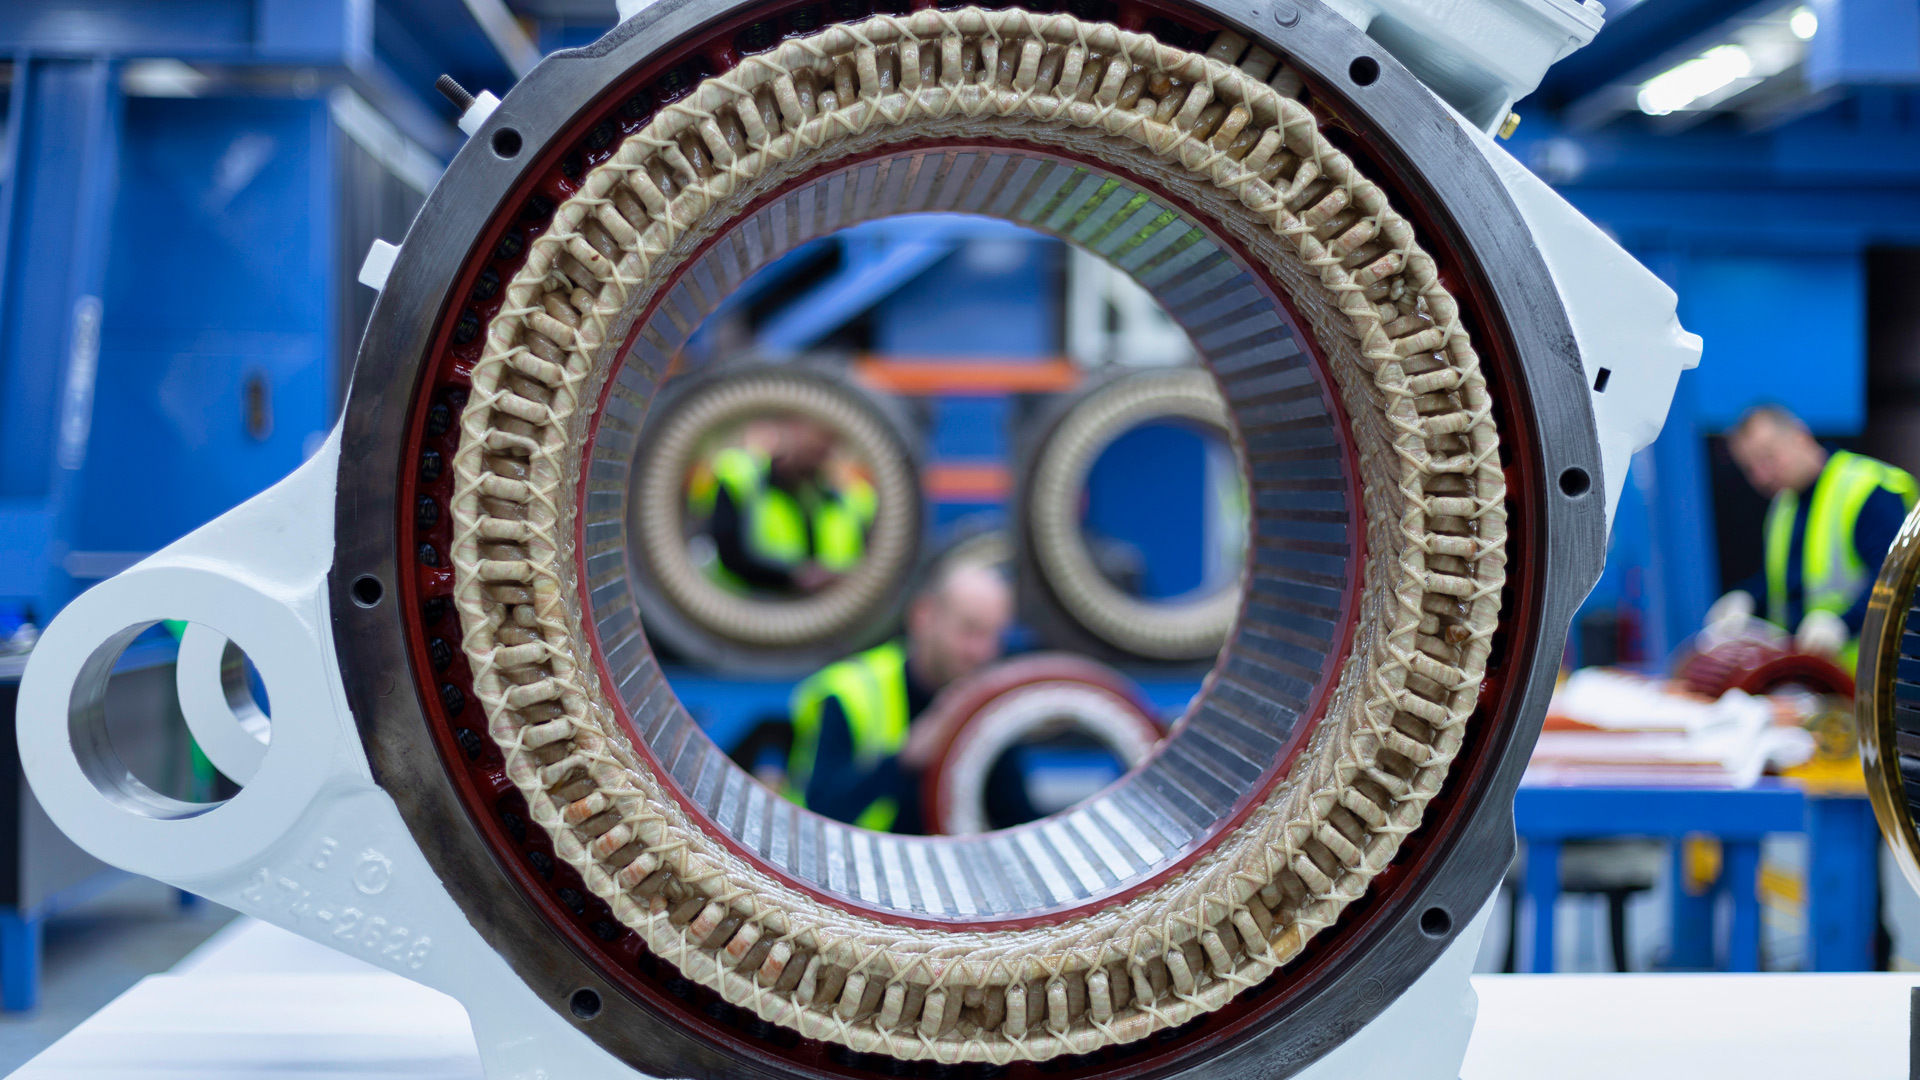 manufacturing_website-photography_commercial-photographer_Rafal-Kostrzewa